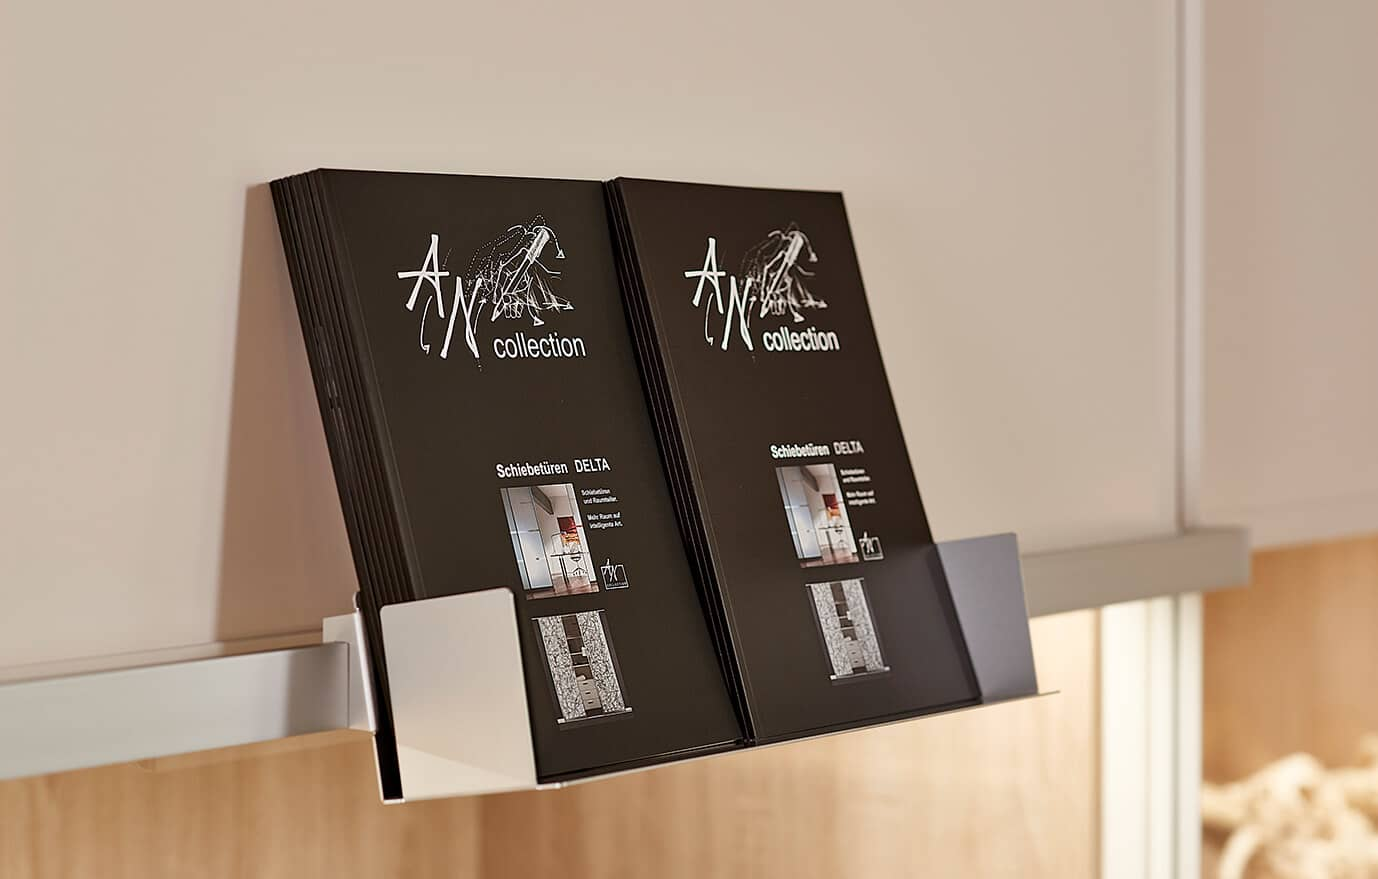 The picture the depicts Ars Nova Collection catalog on a holder.